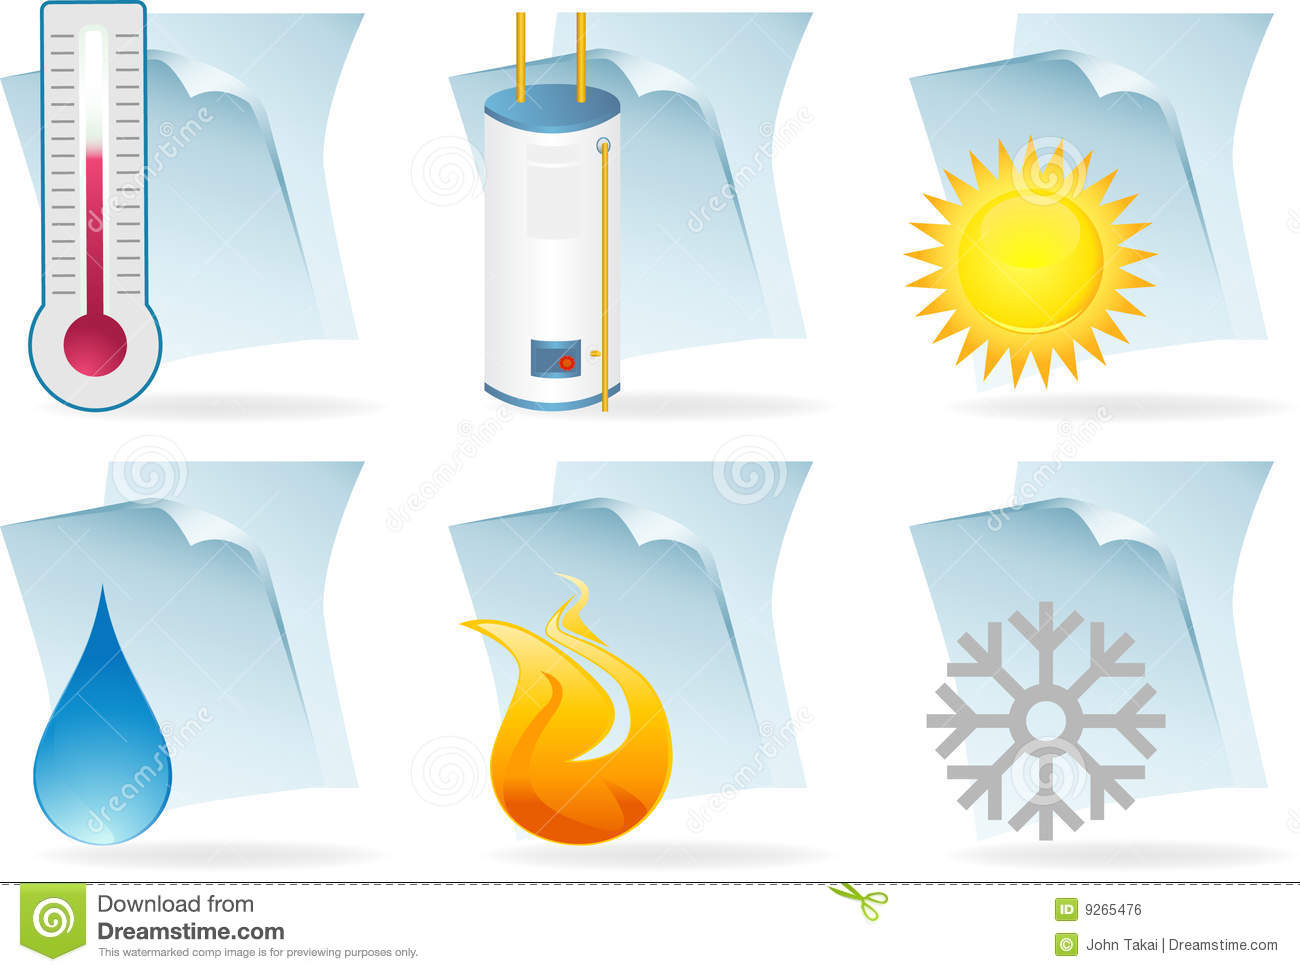 Water Heater Document Icons Royalty Free Stock Image   Image  9265476